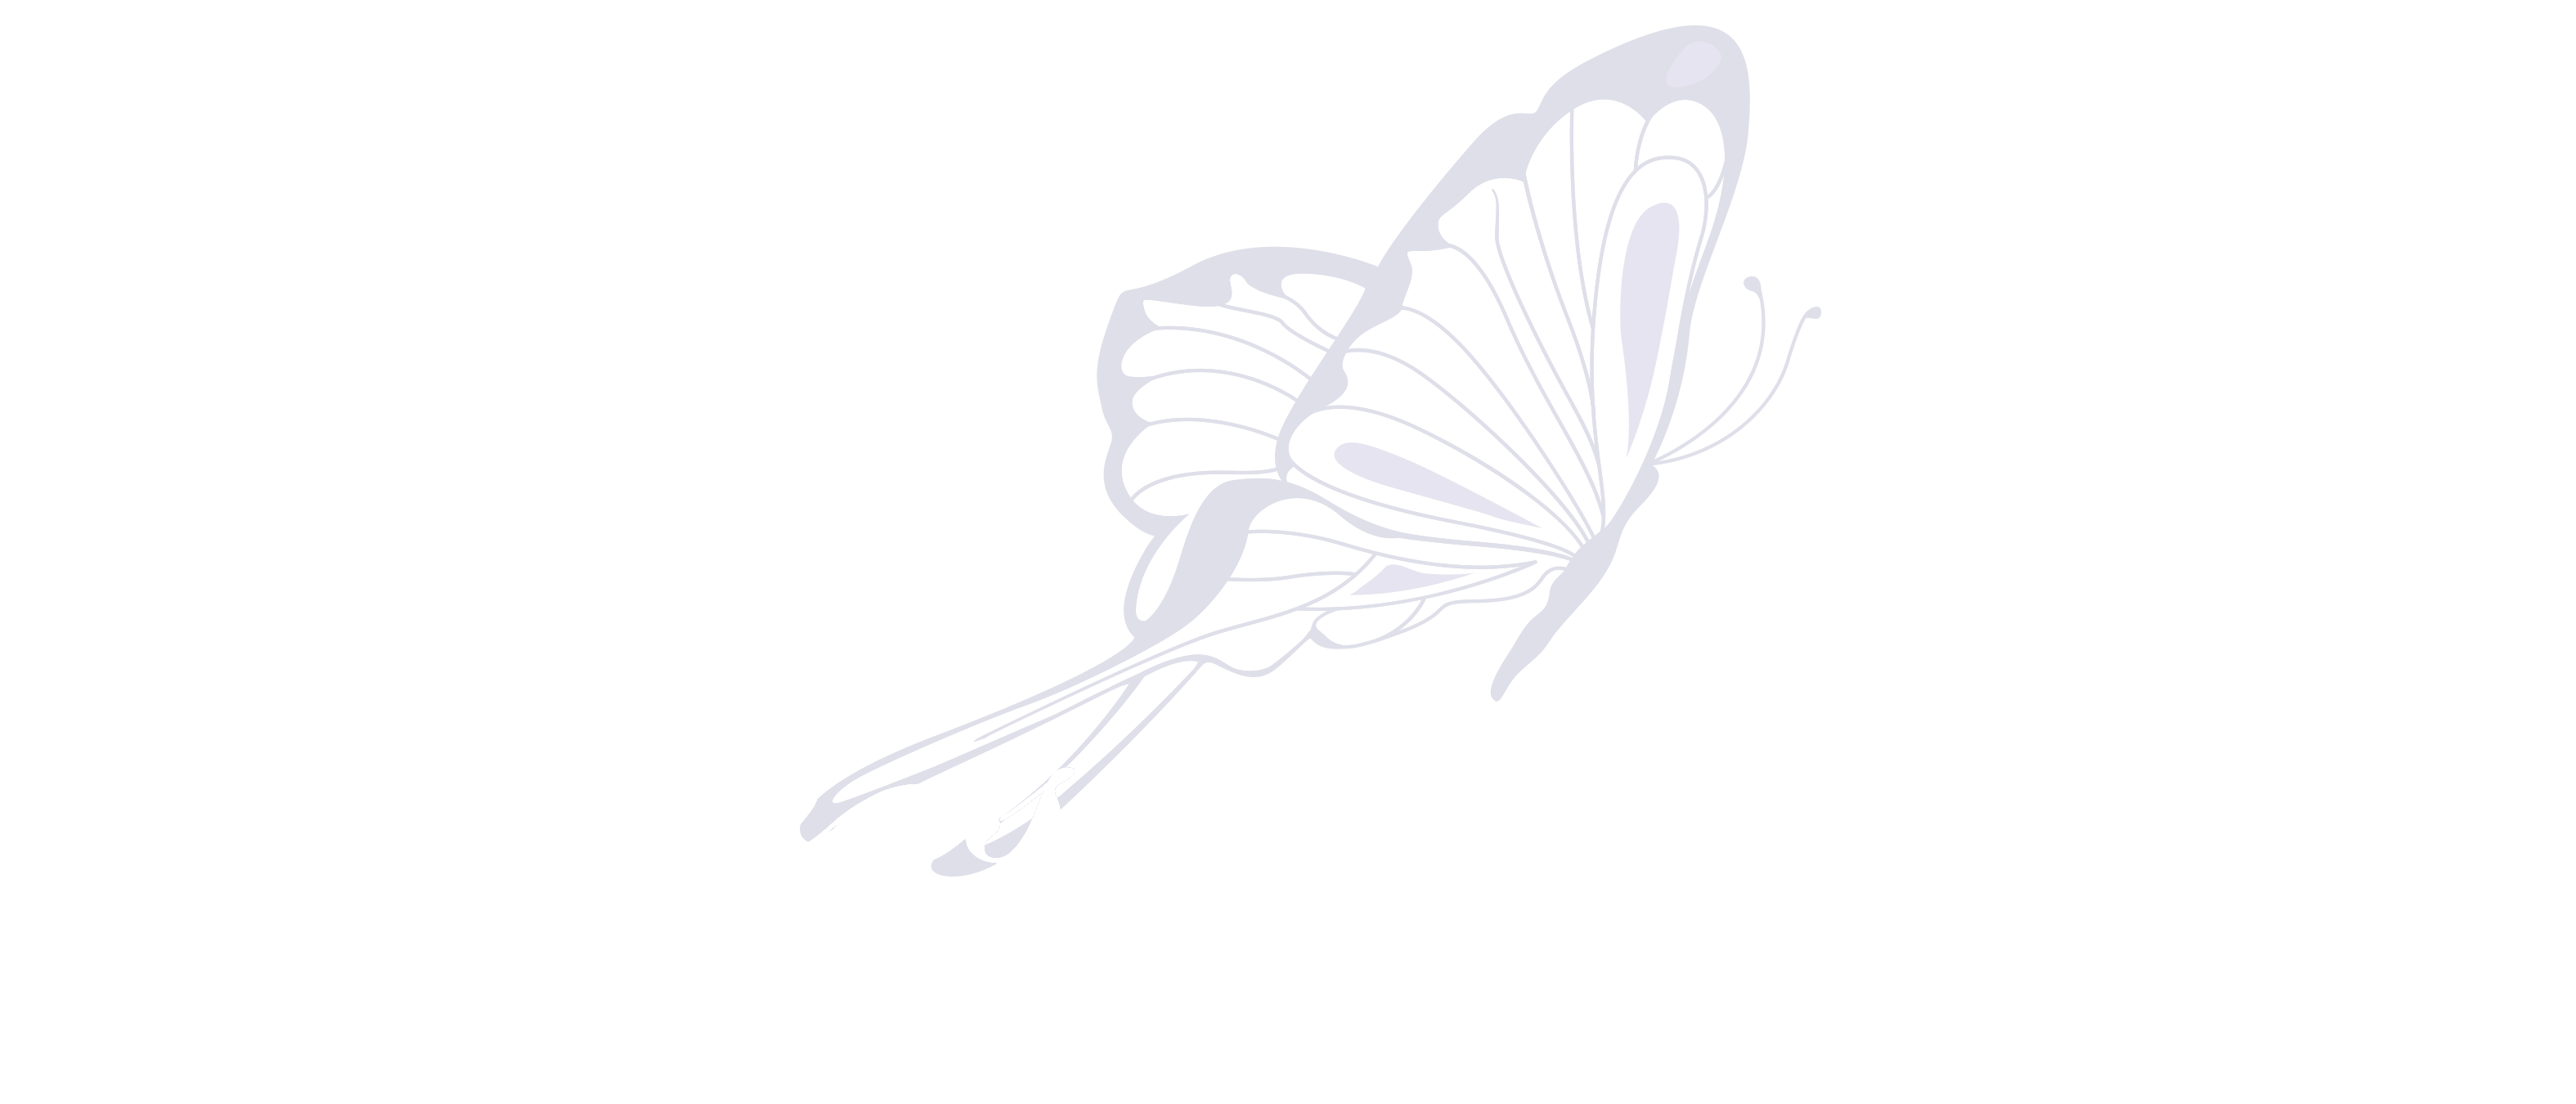 Lowther Funeral Home